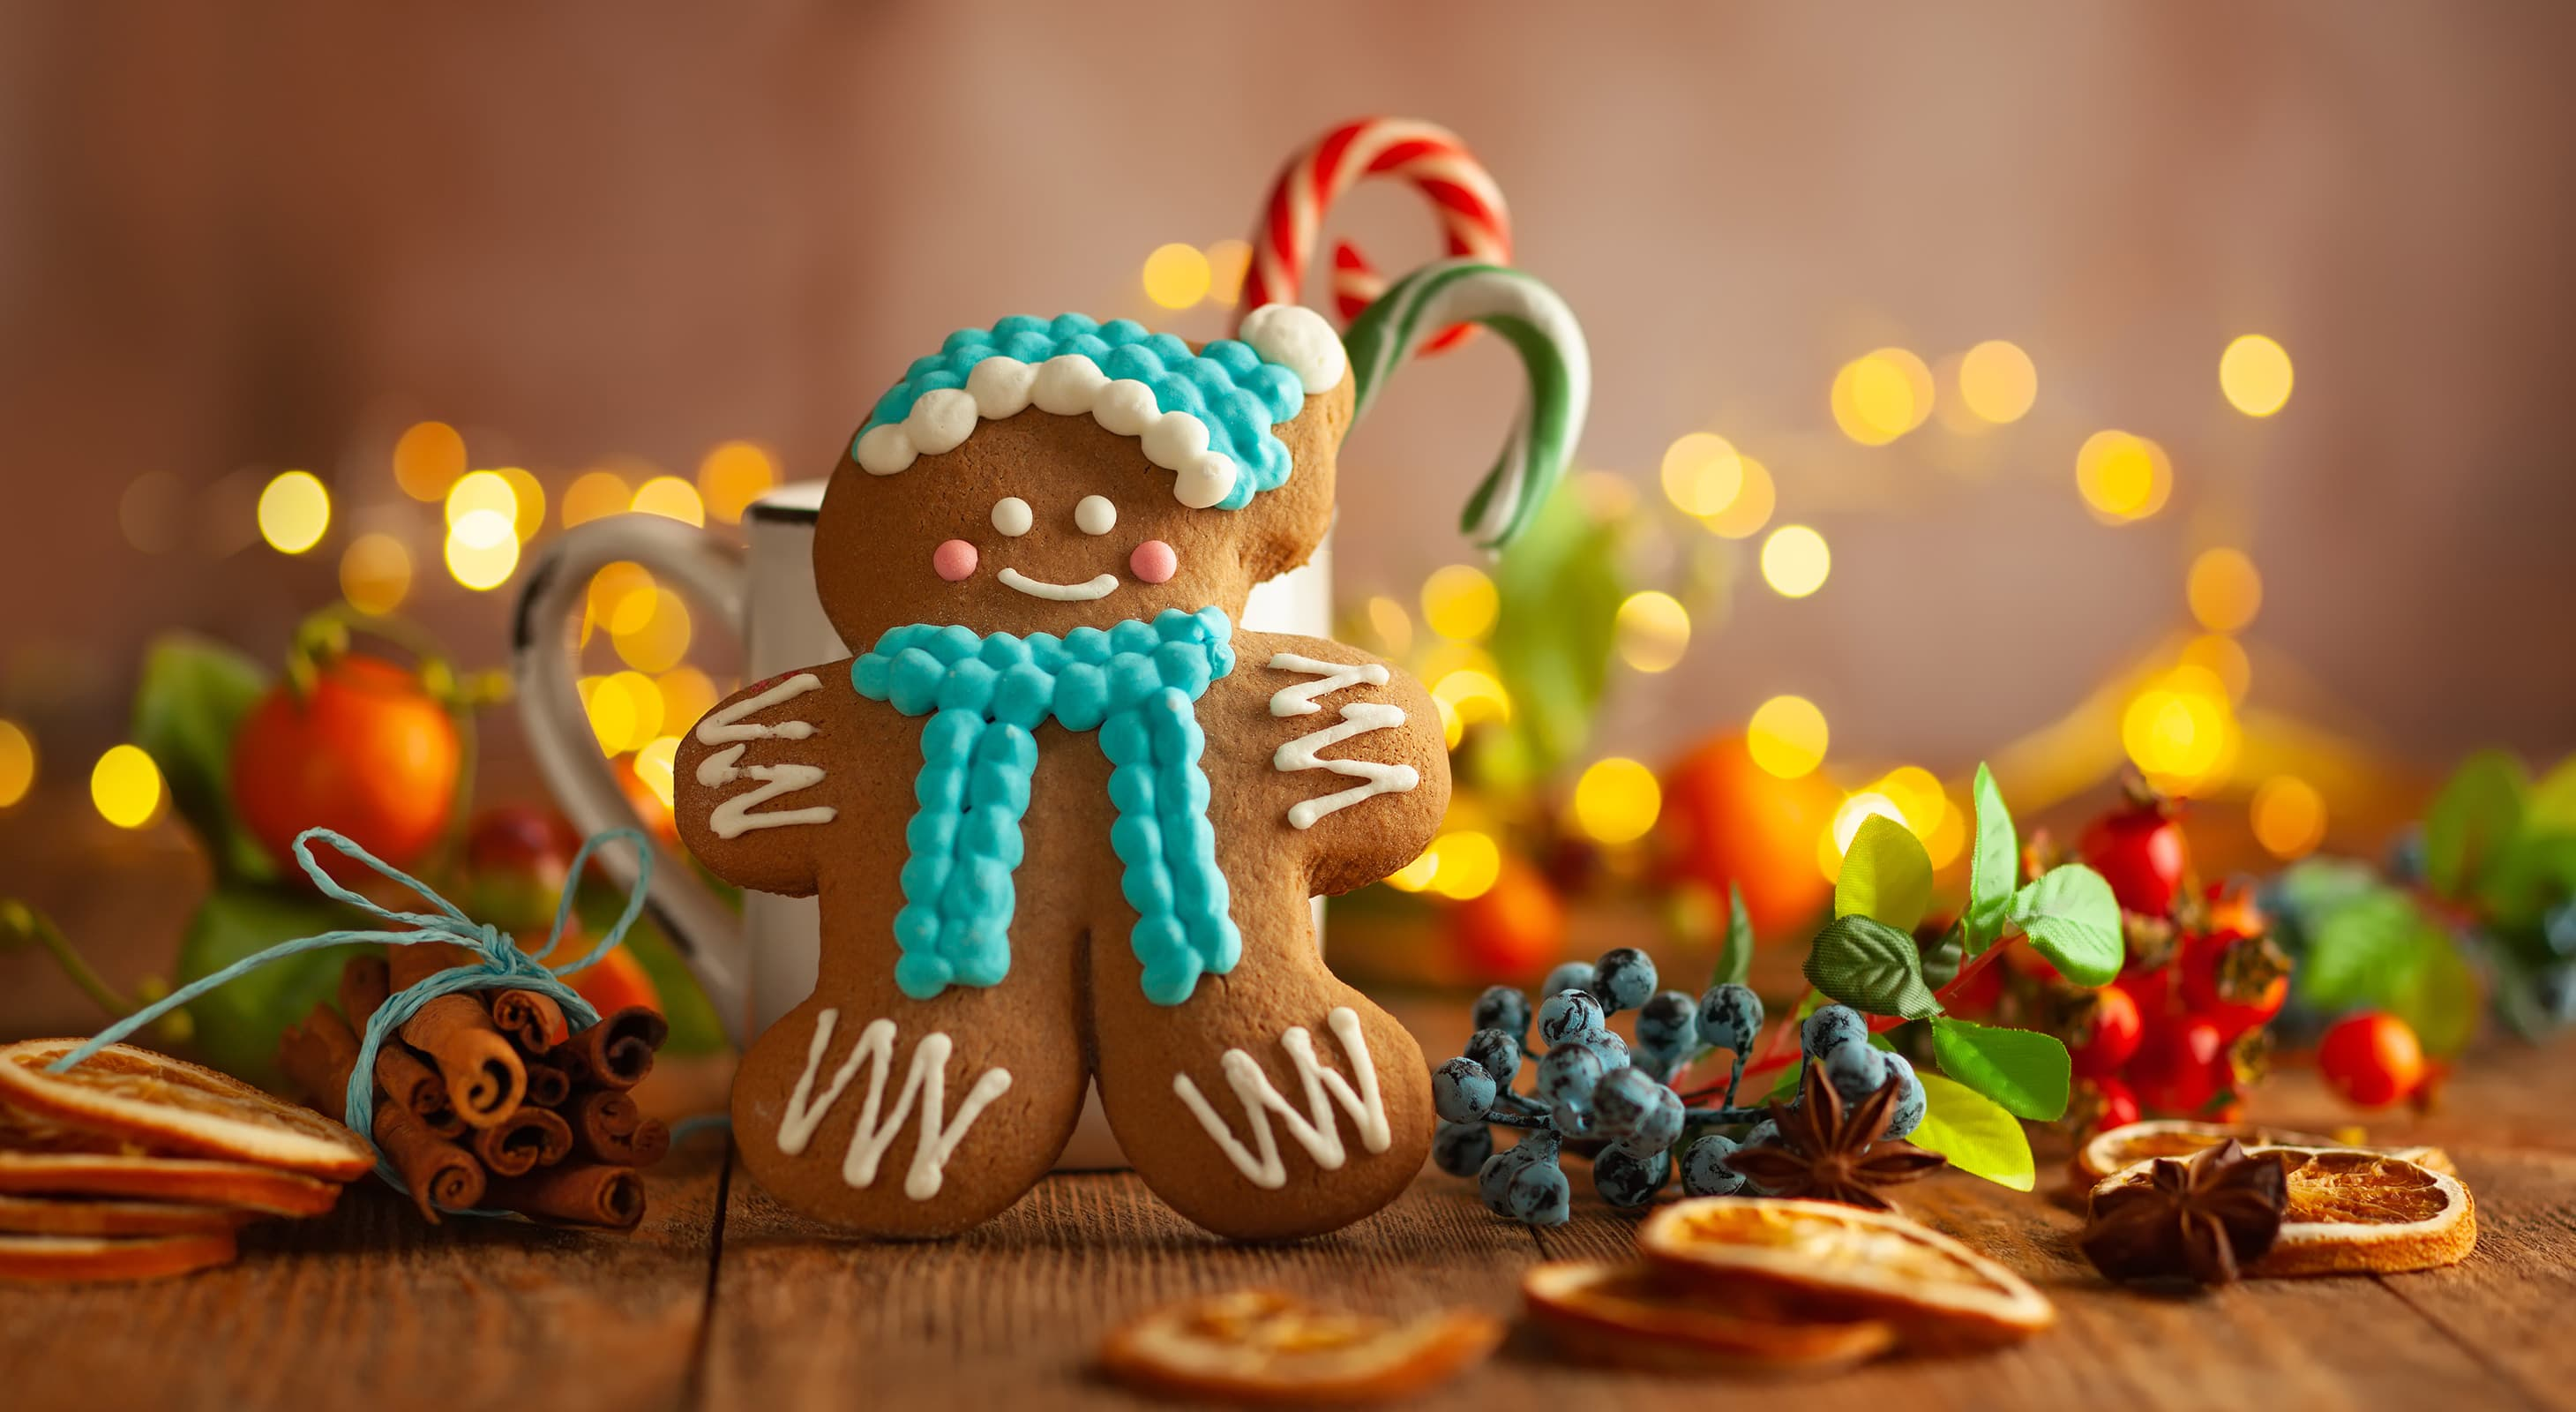 gingerbread and Christmas decorations